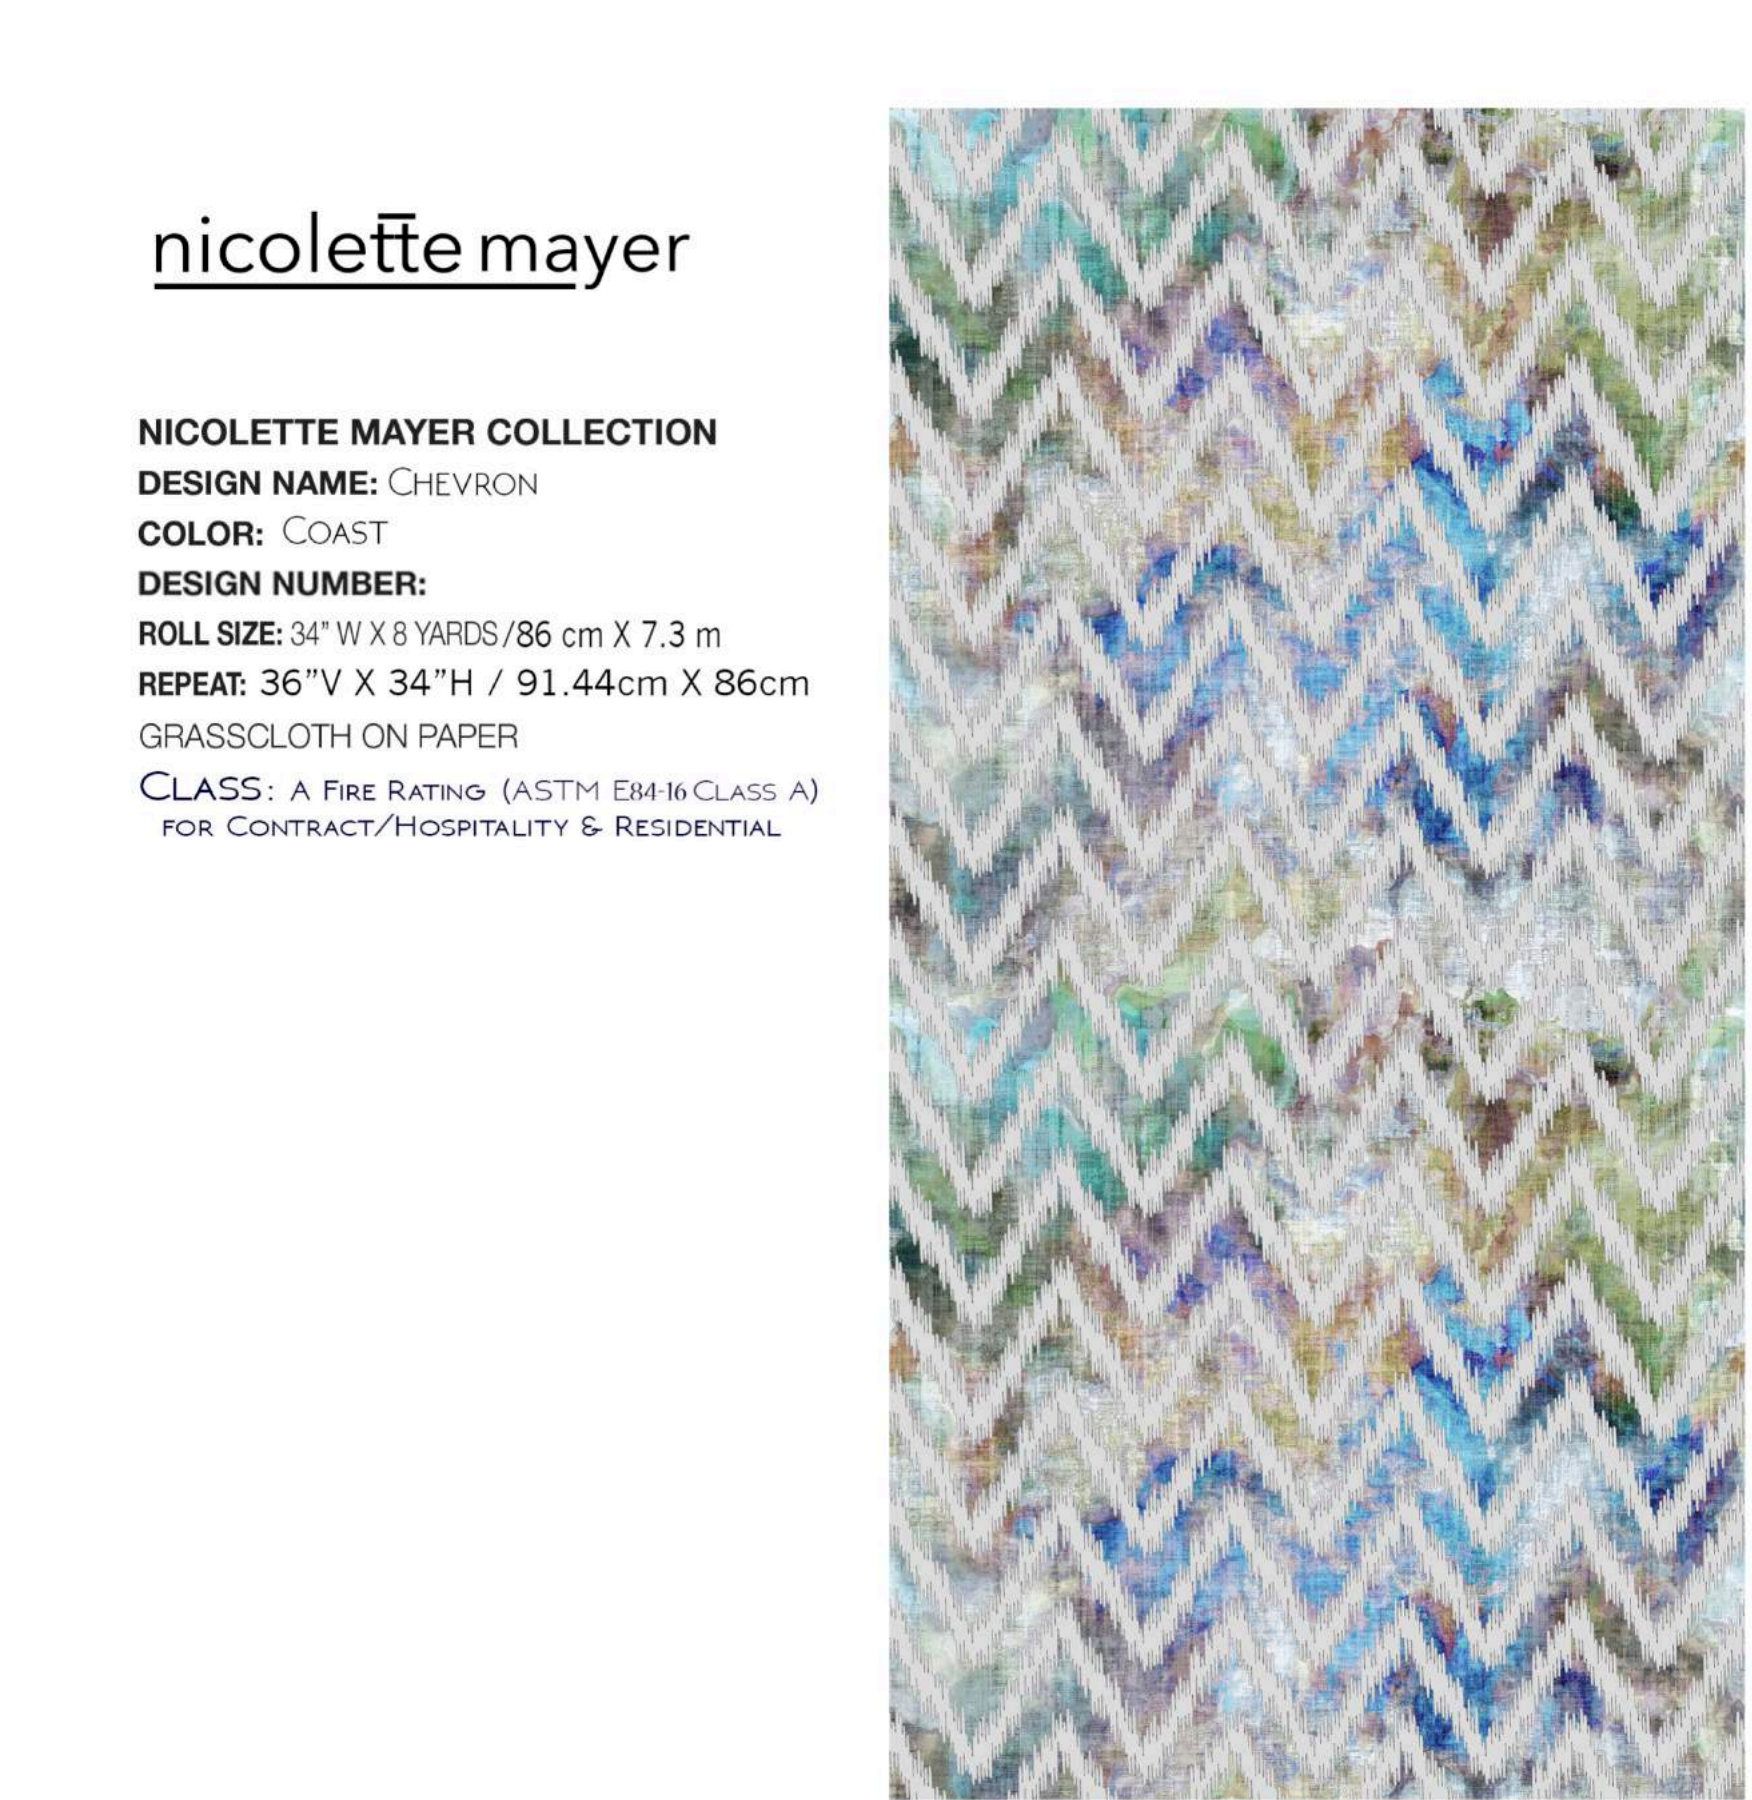 Nicolette Mayer Discount Fabric and Wallpaper Online